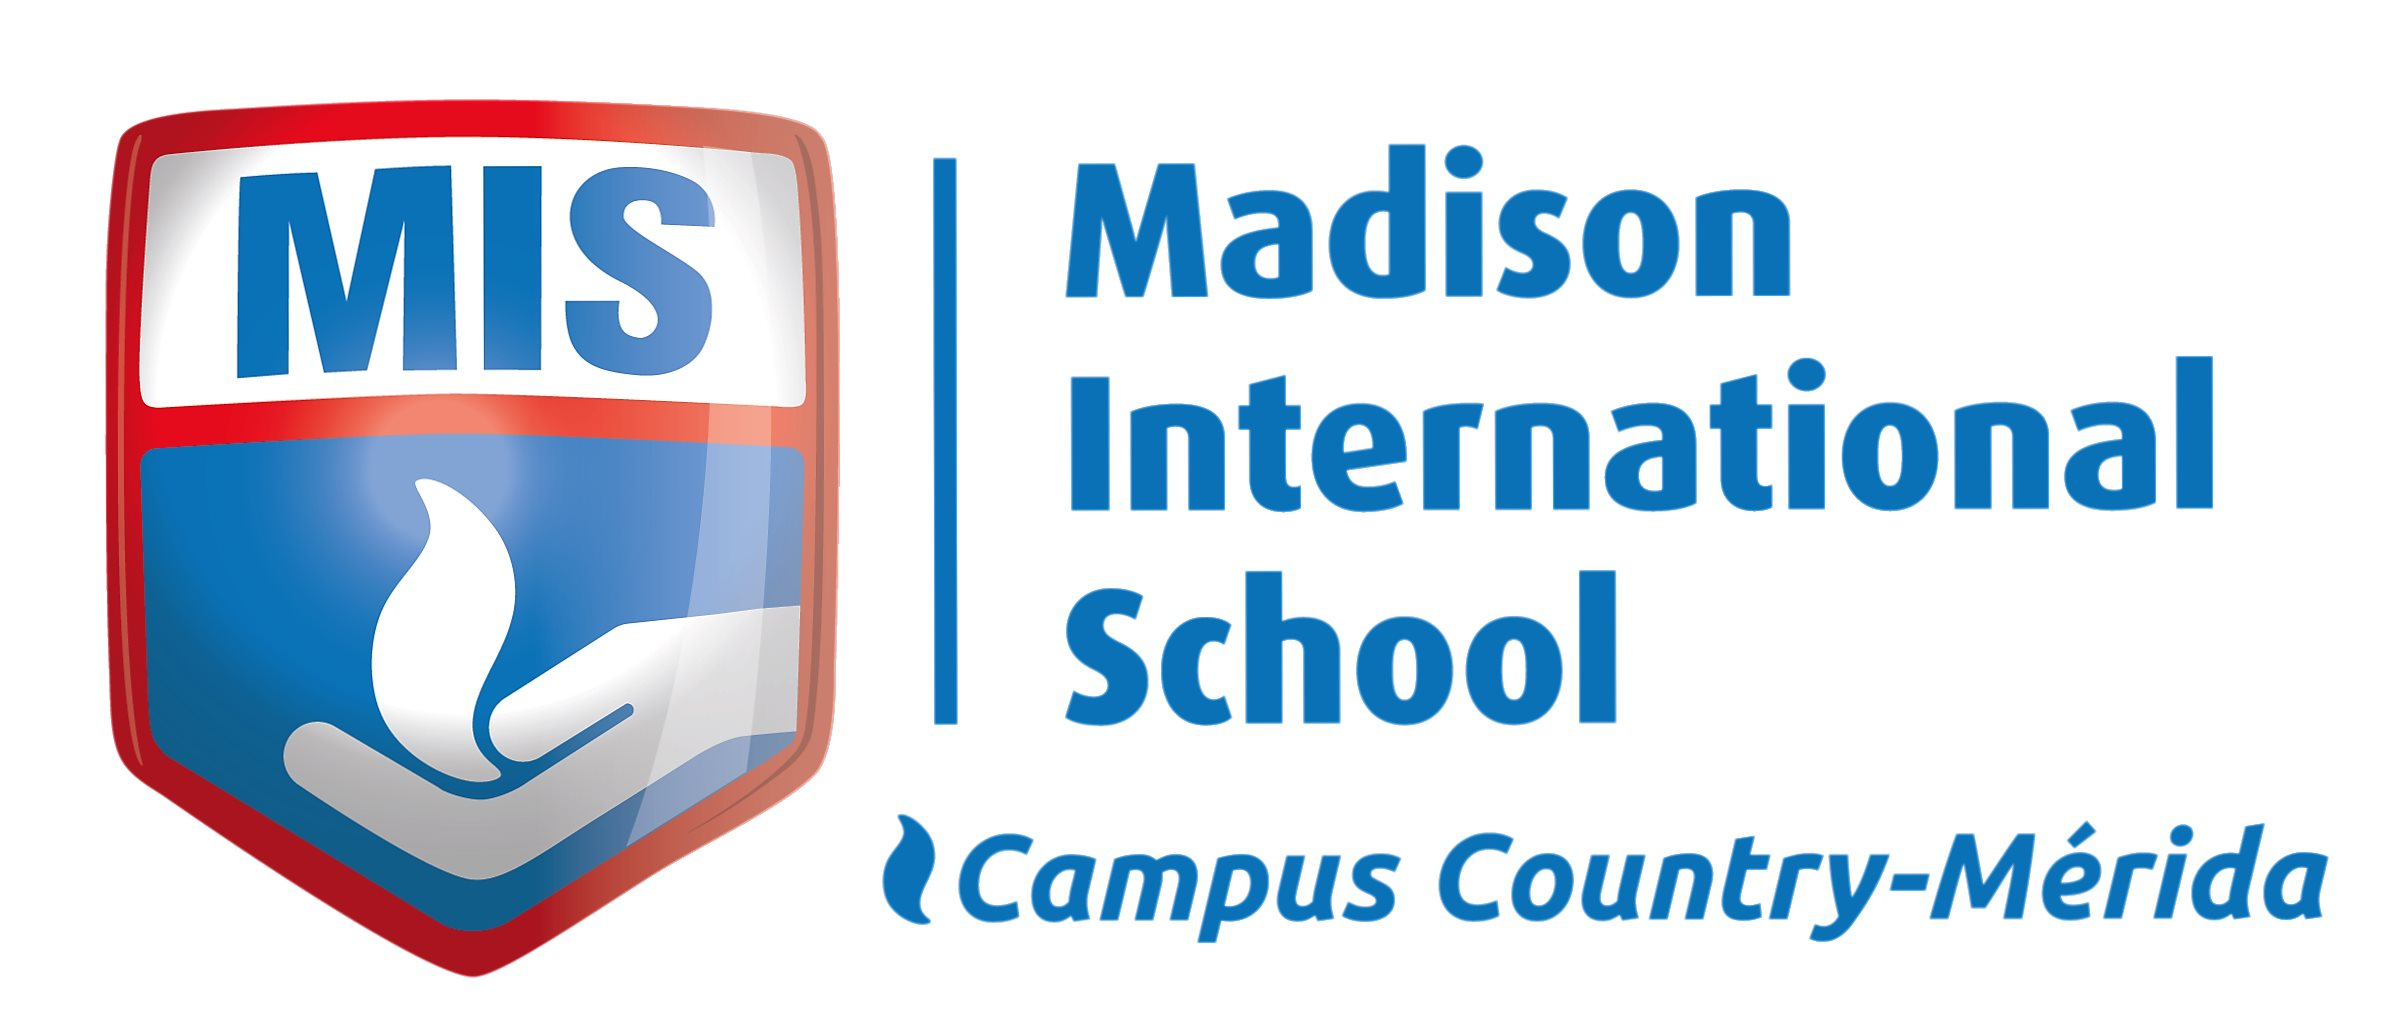 Madison International School Merida1